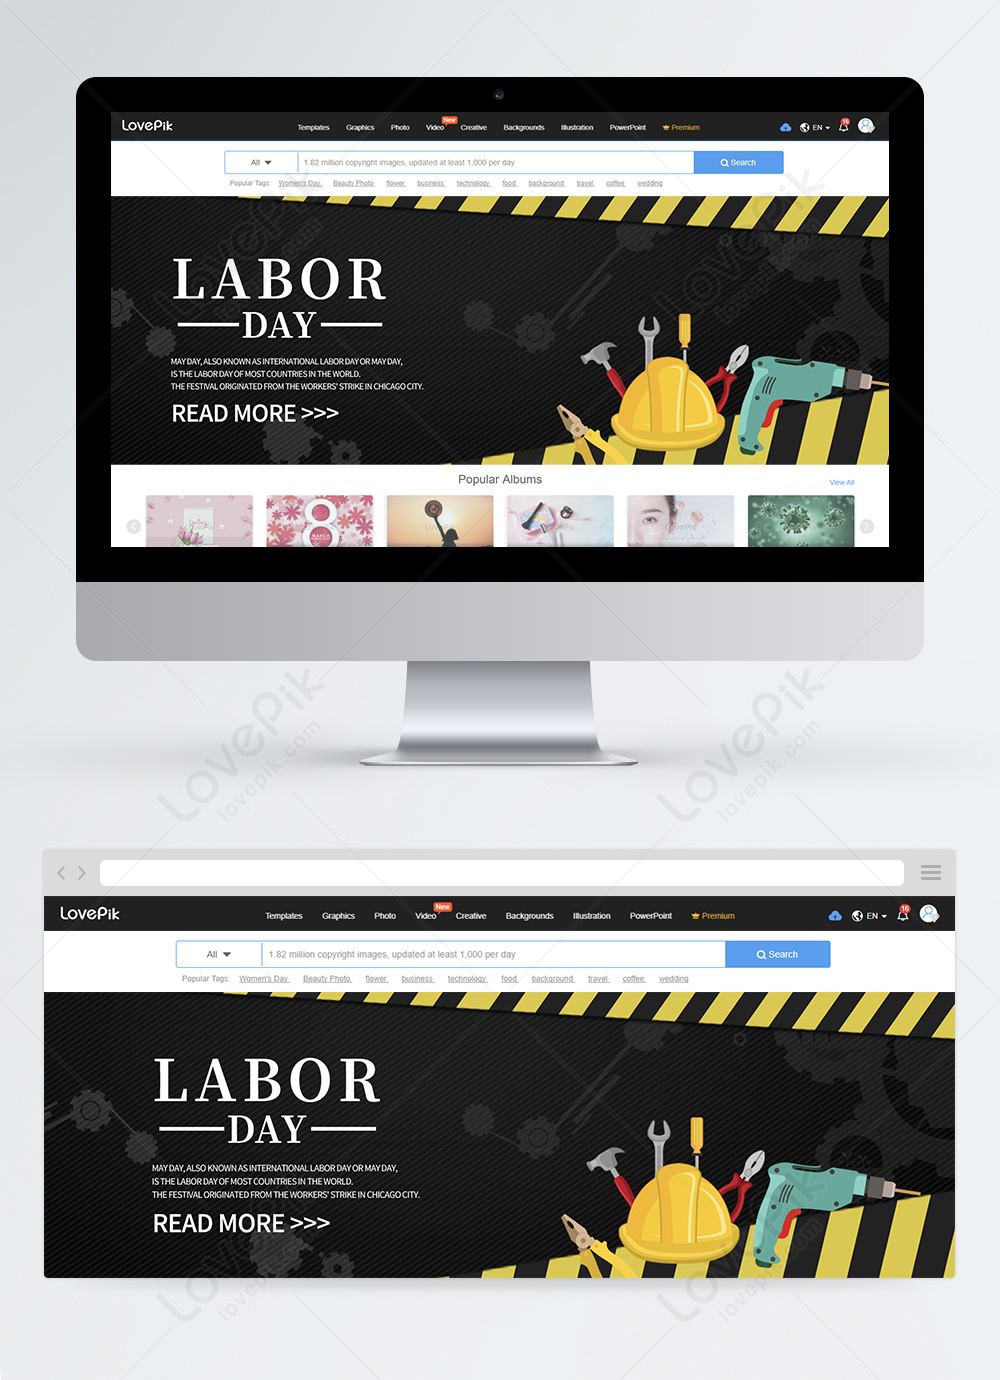 Happy Labor Day Web Banner Design Template Image Picture Free Download 450006530 Lovepik Com